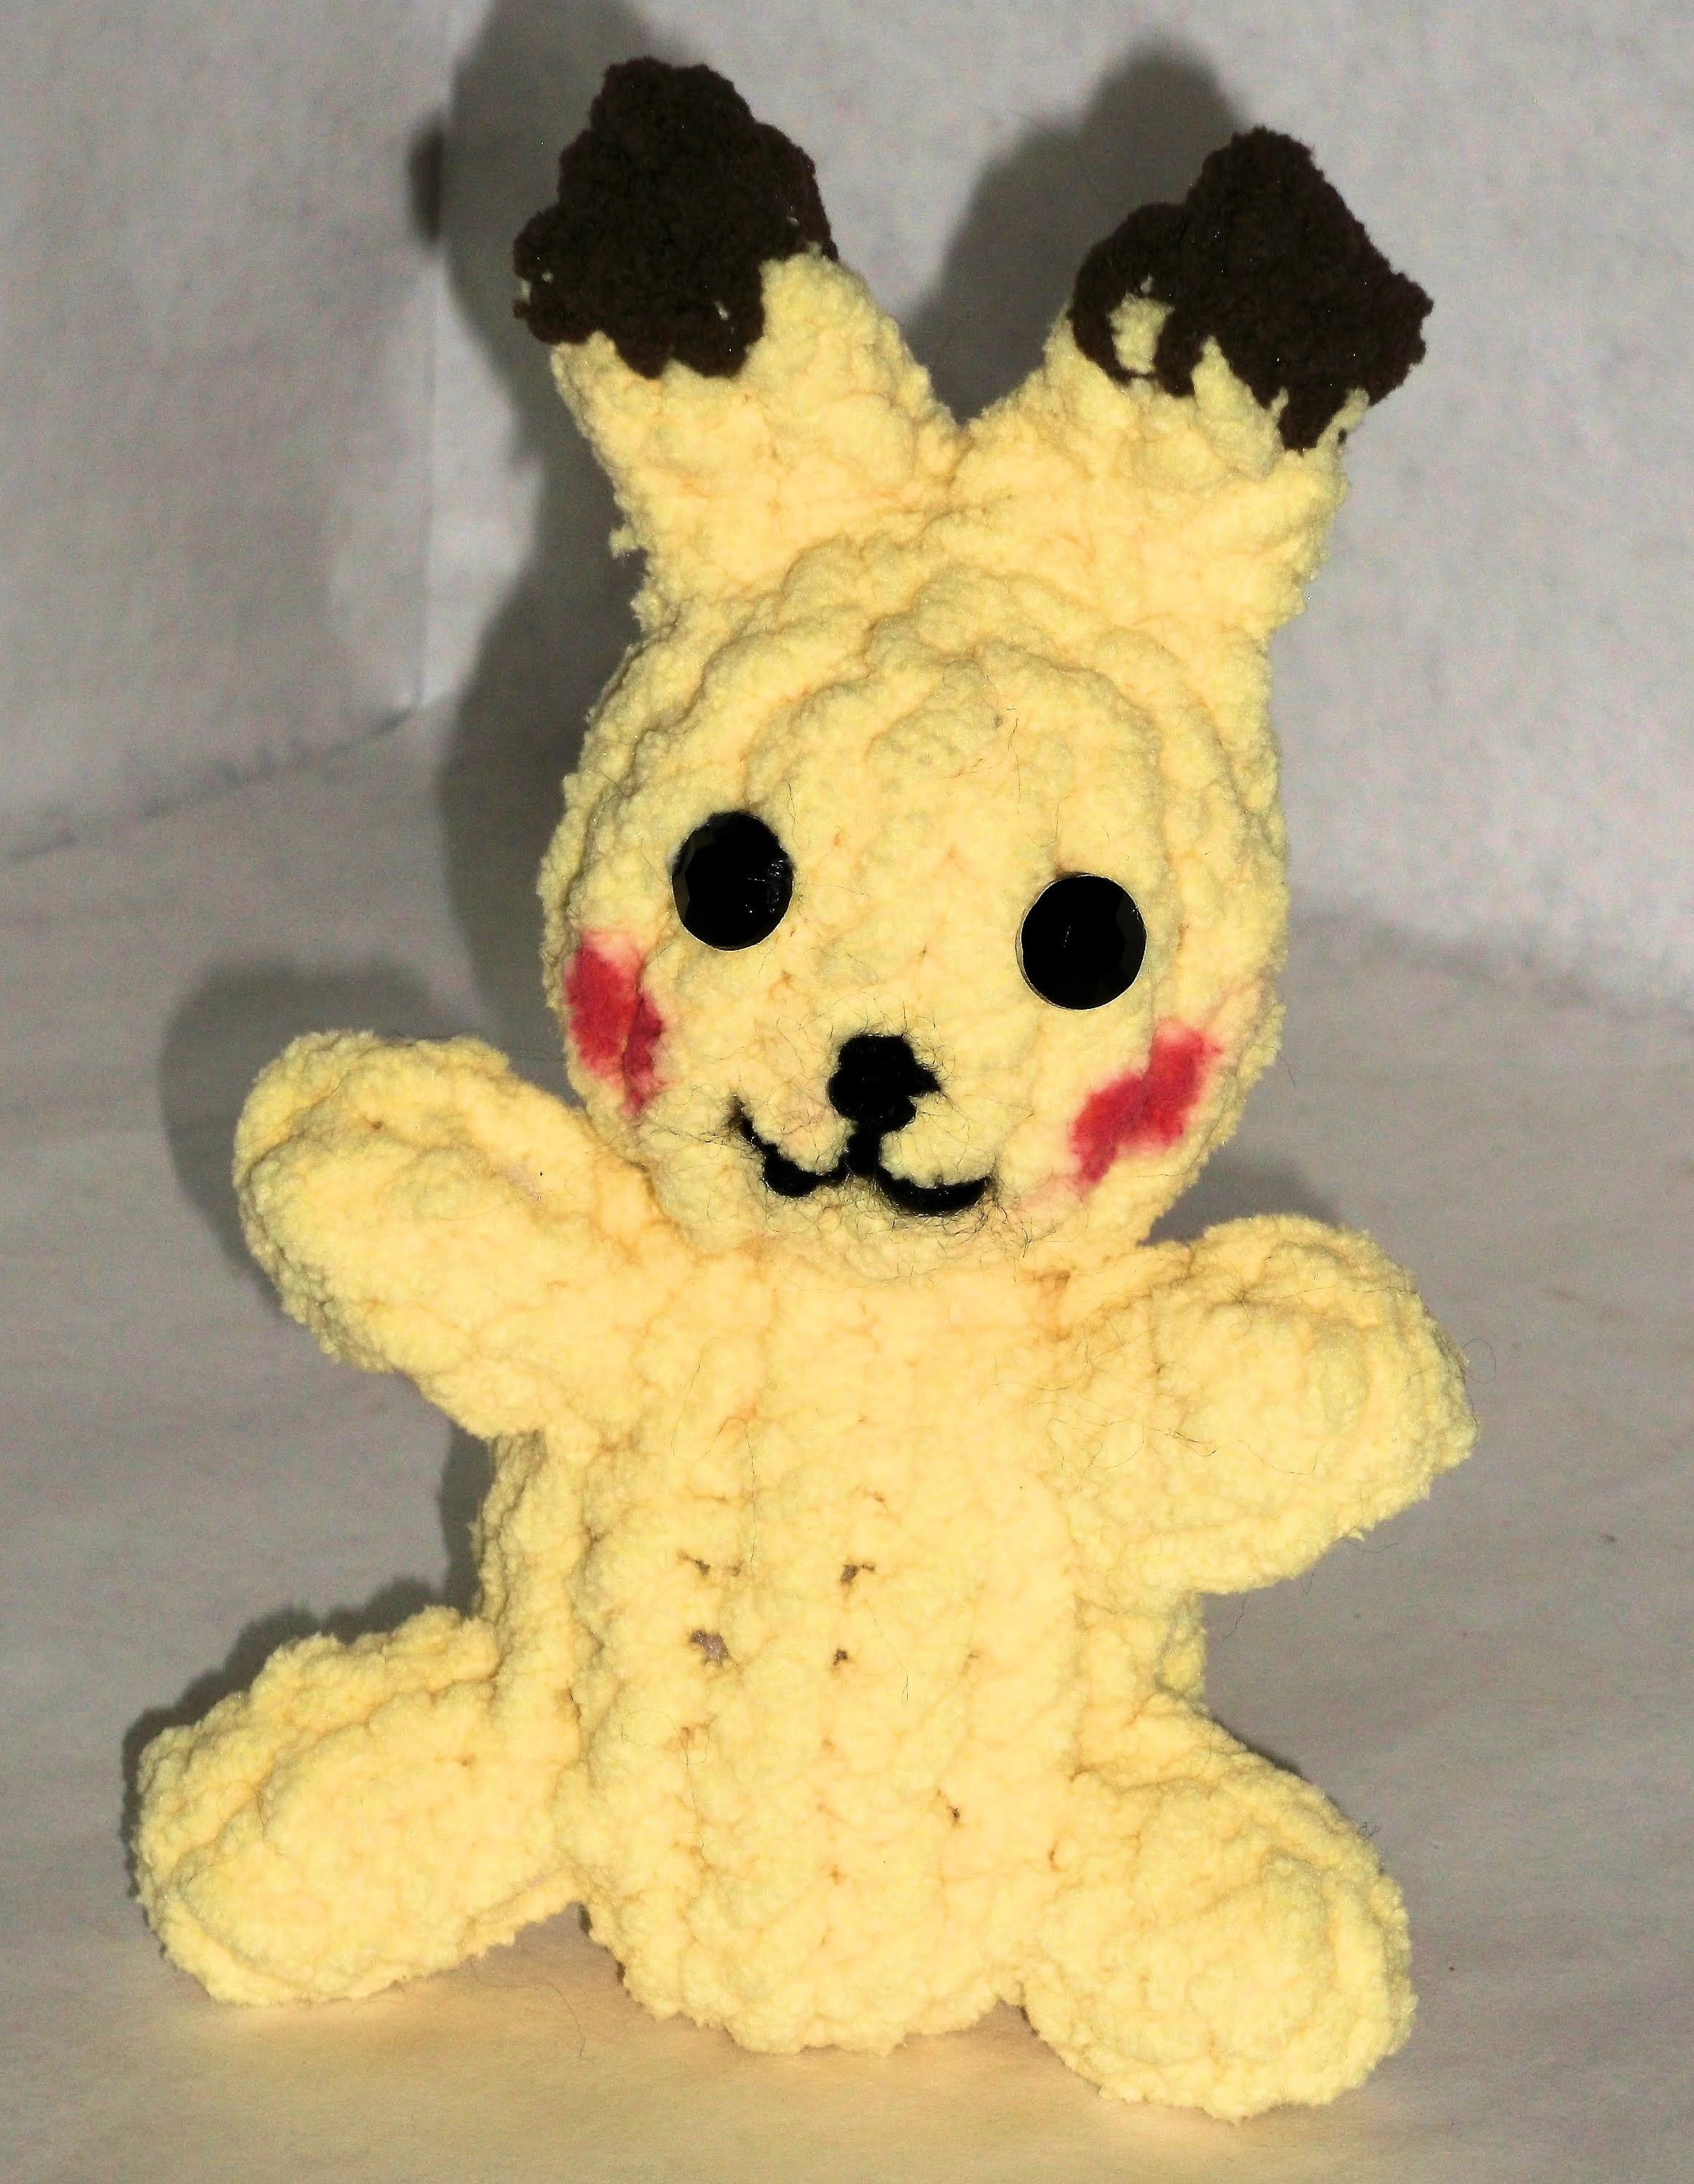 How to Loom Knit a Pikachu | Loom knitting, Loom knitting projects ...